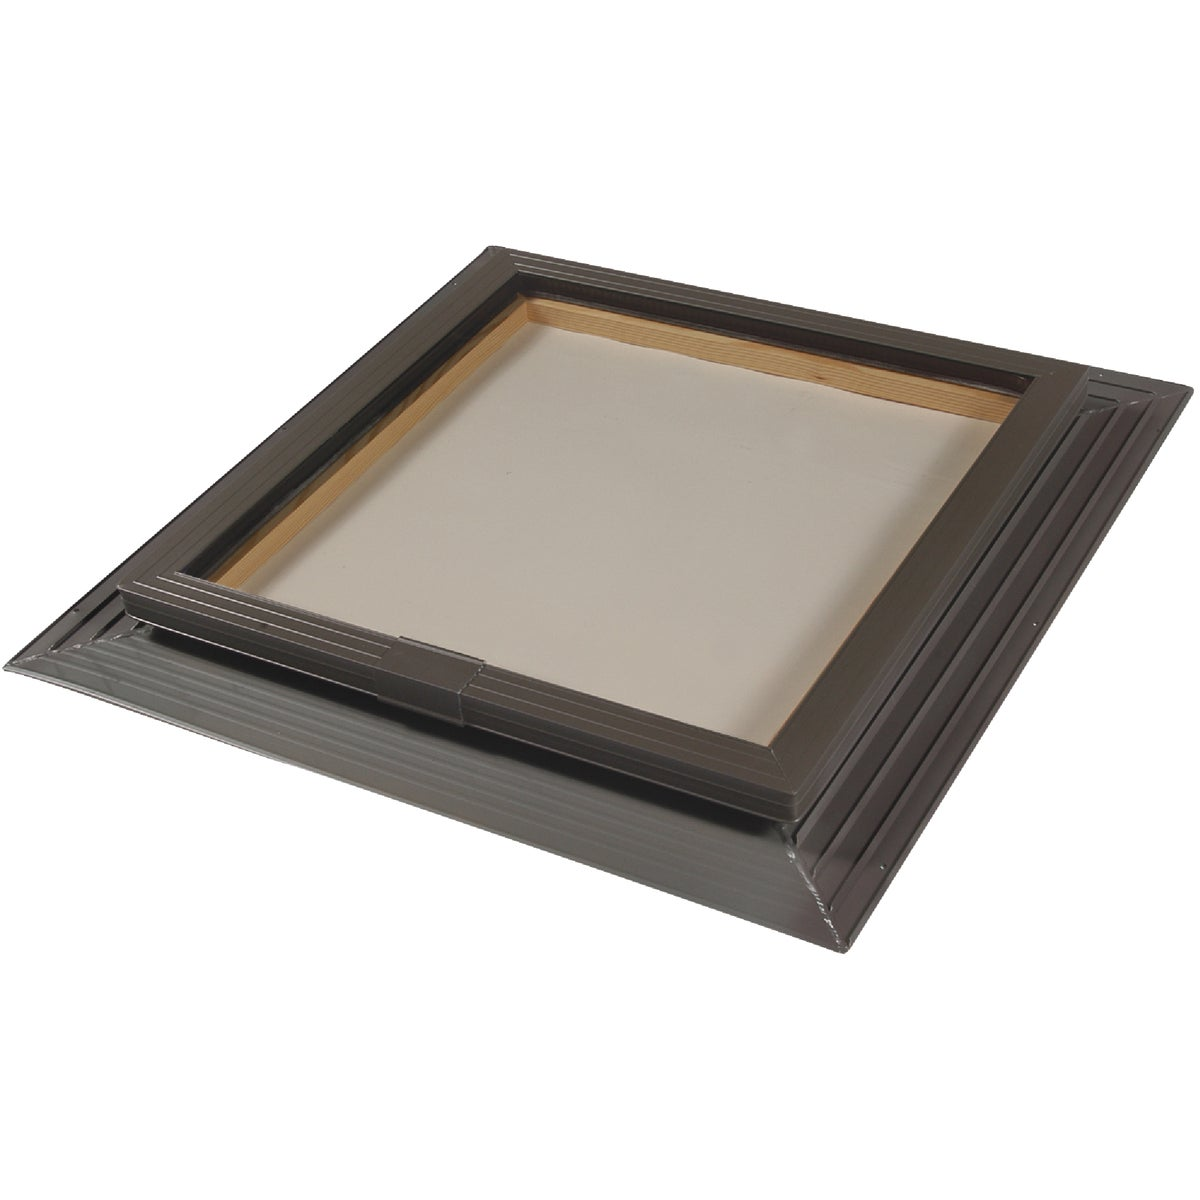 2X2 BRZ LOW-E SKYLIGHT - FGC2525HTB by Sun Tek Manuf Inc